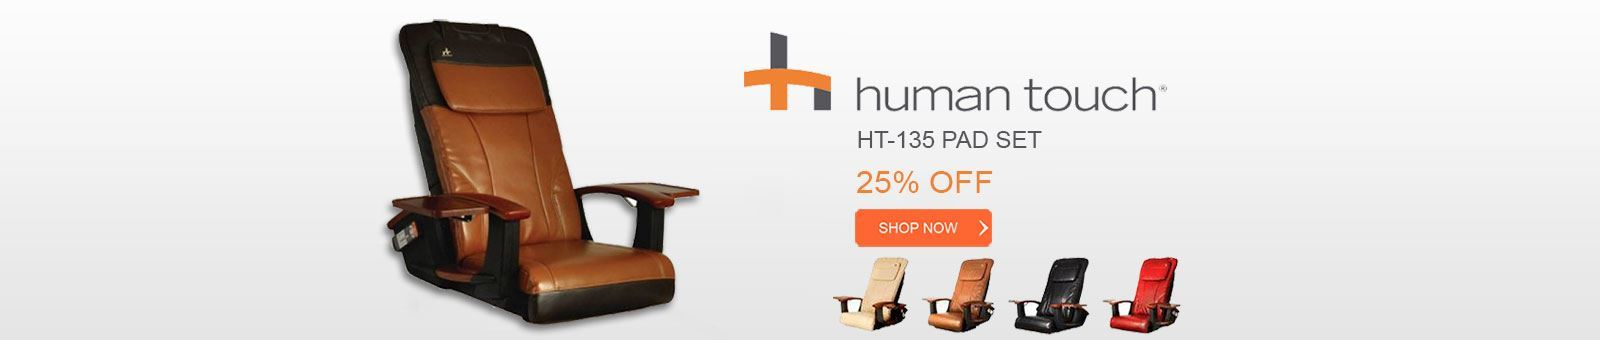 Human Touch HT-135 pad set, 25% off